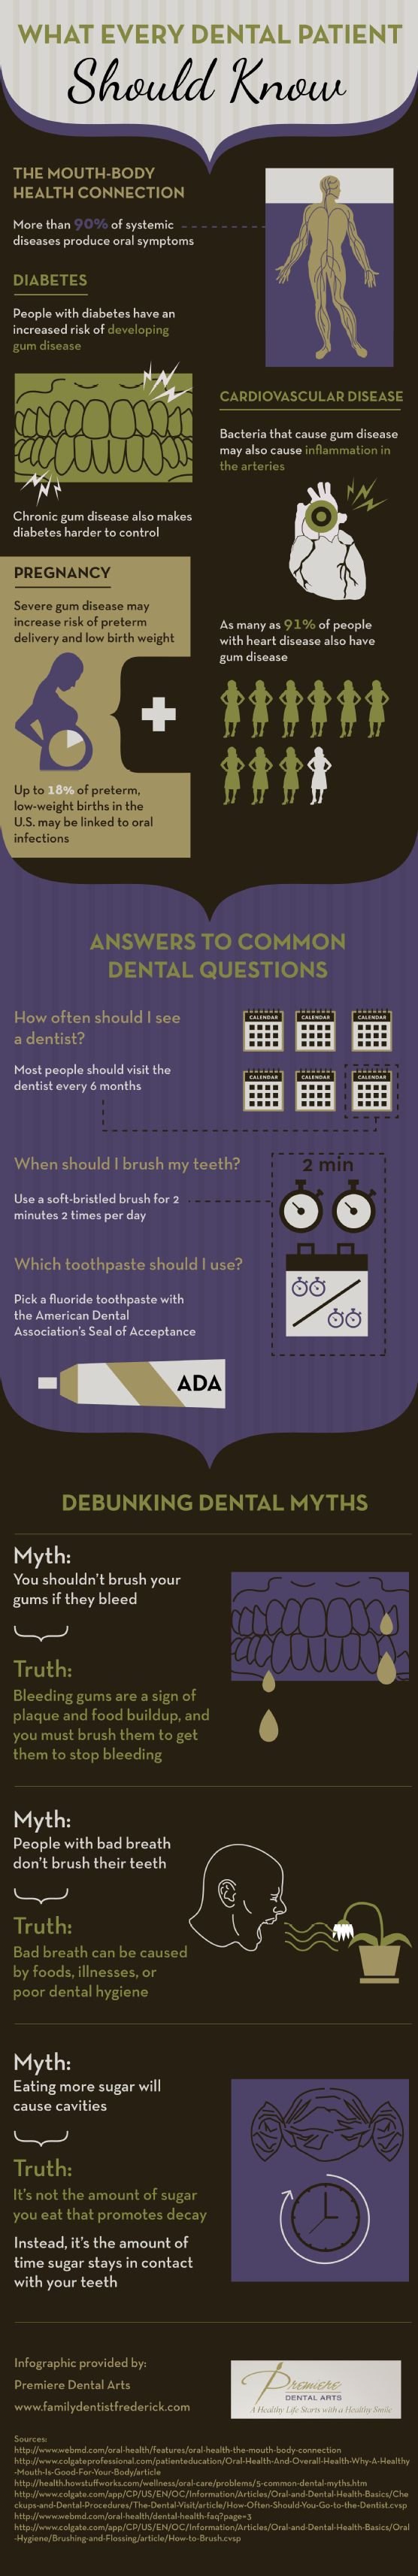 What every dental patient should know